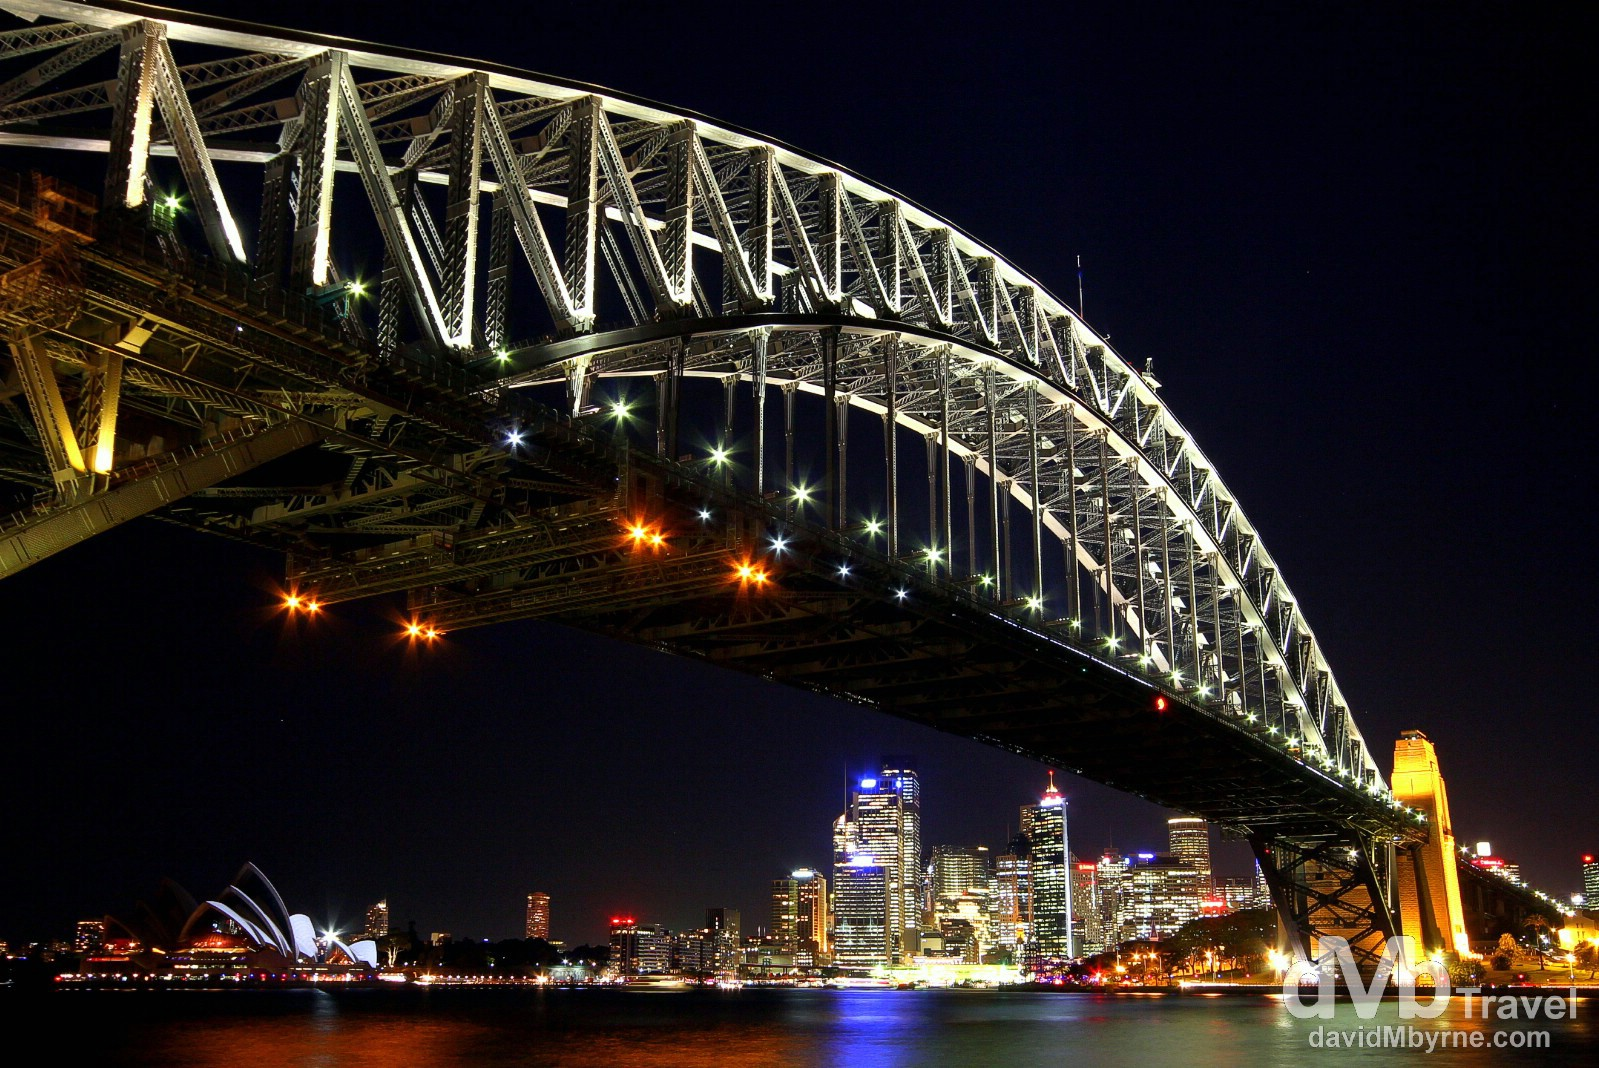 The Sydney CBD as seen at night from under the Harbour Bridge in the Kirribilli district of the city. June 7th 2012.